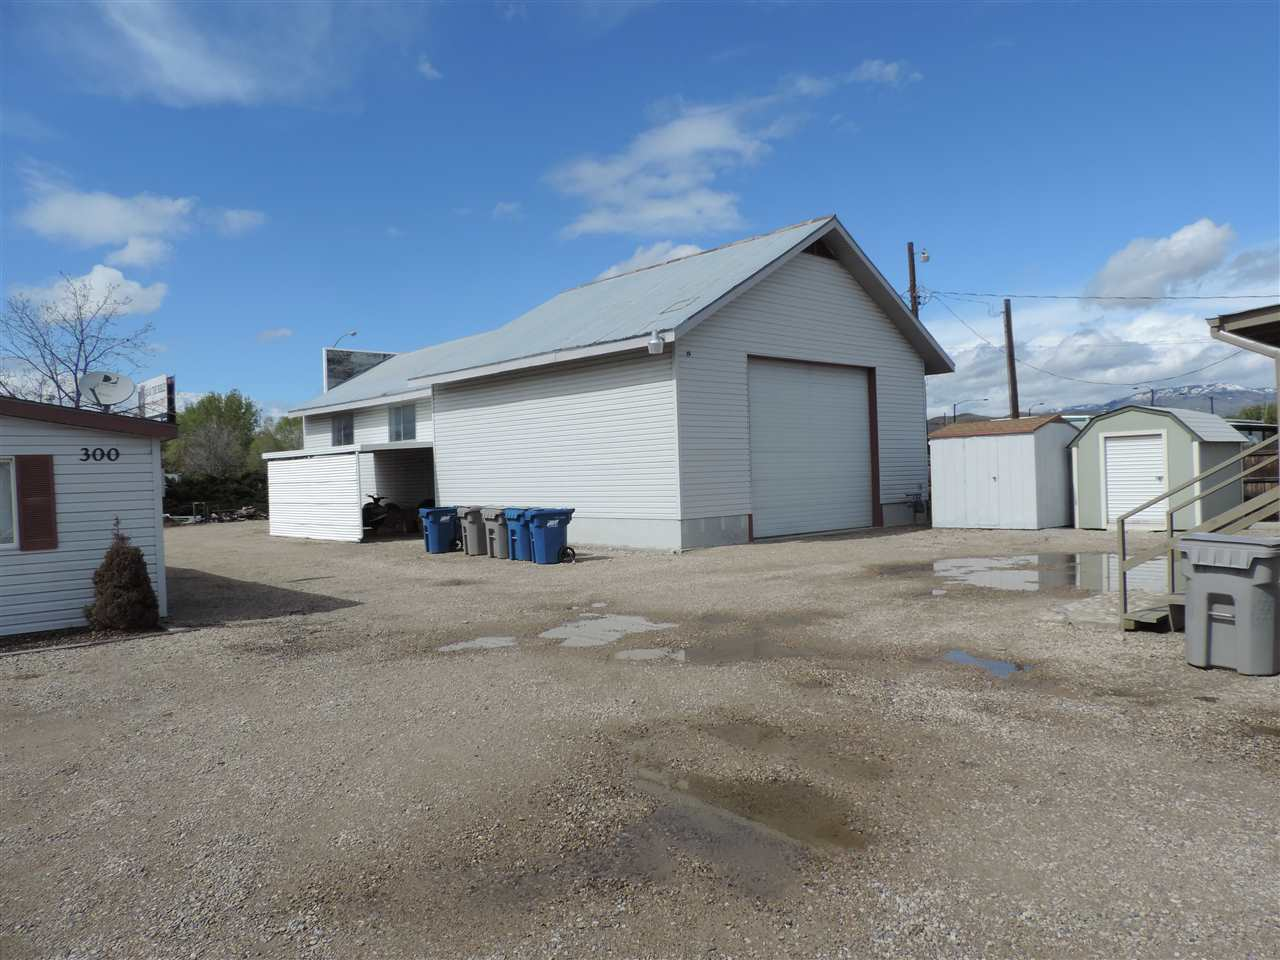 Multi-Family Home for Sale at 300 E 41st And 302, 304,306 Garden City, Idaho 83714